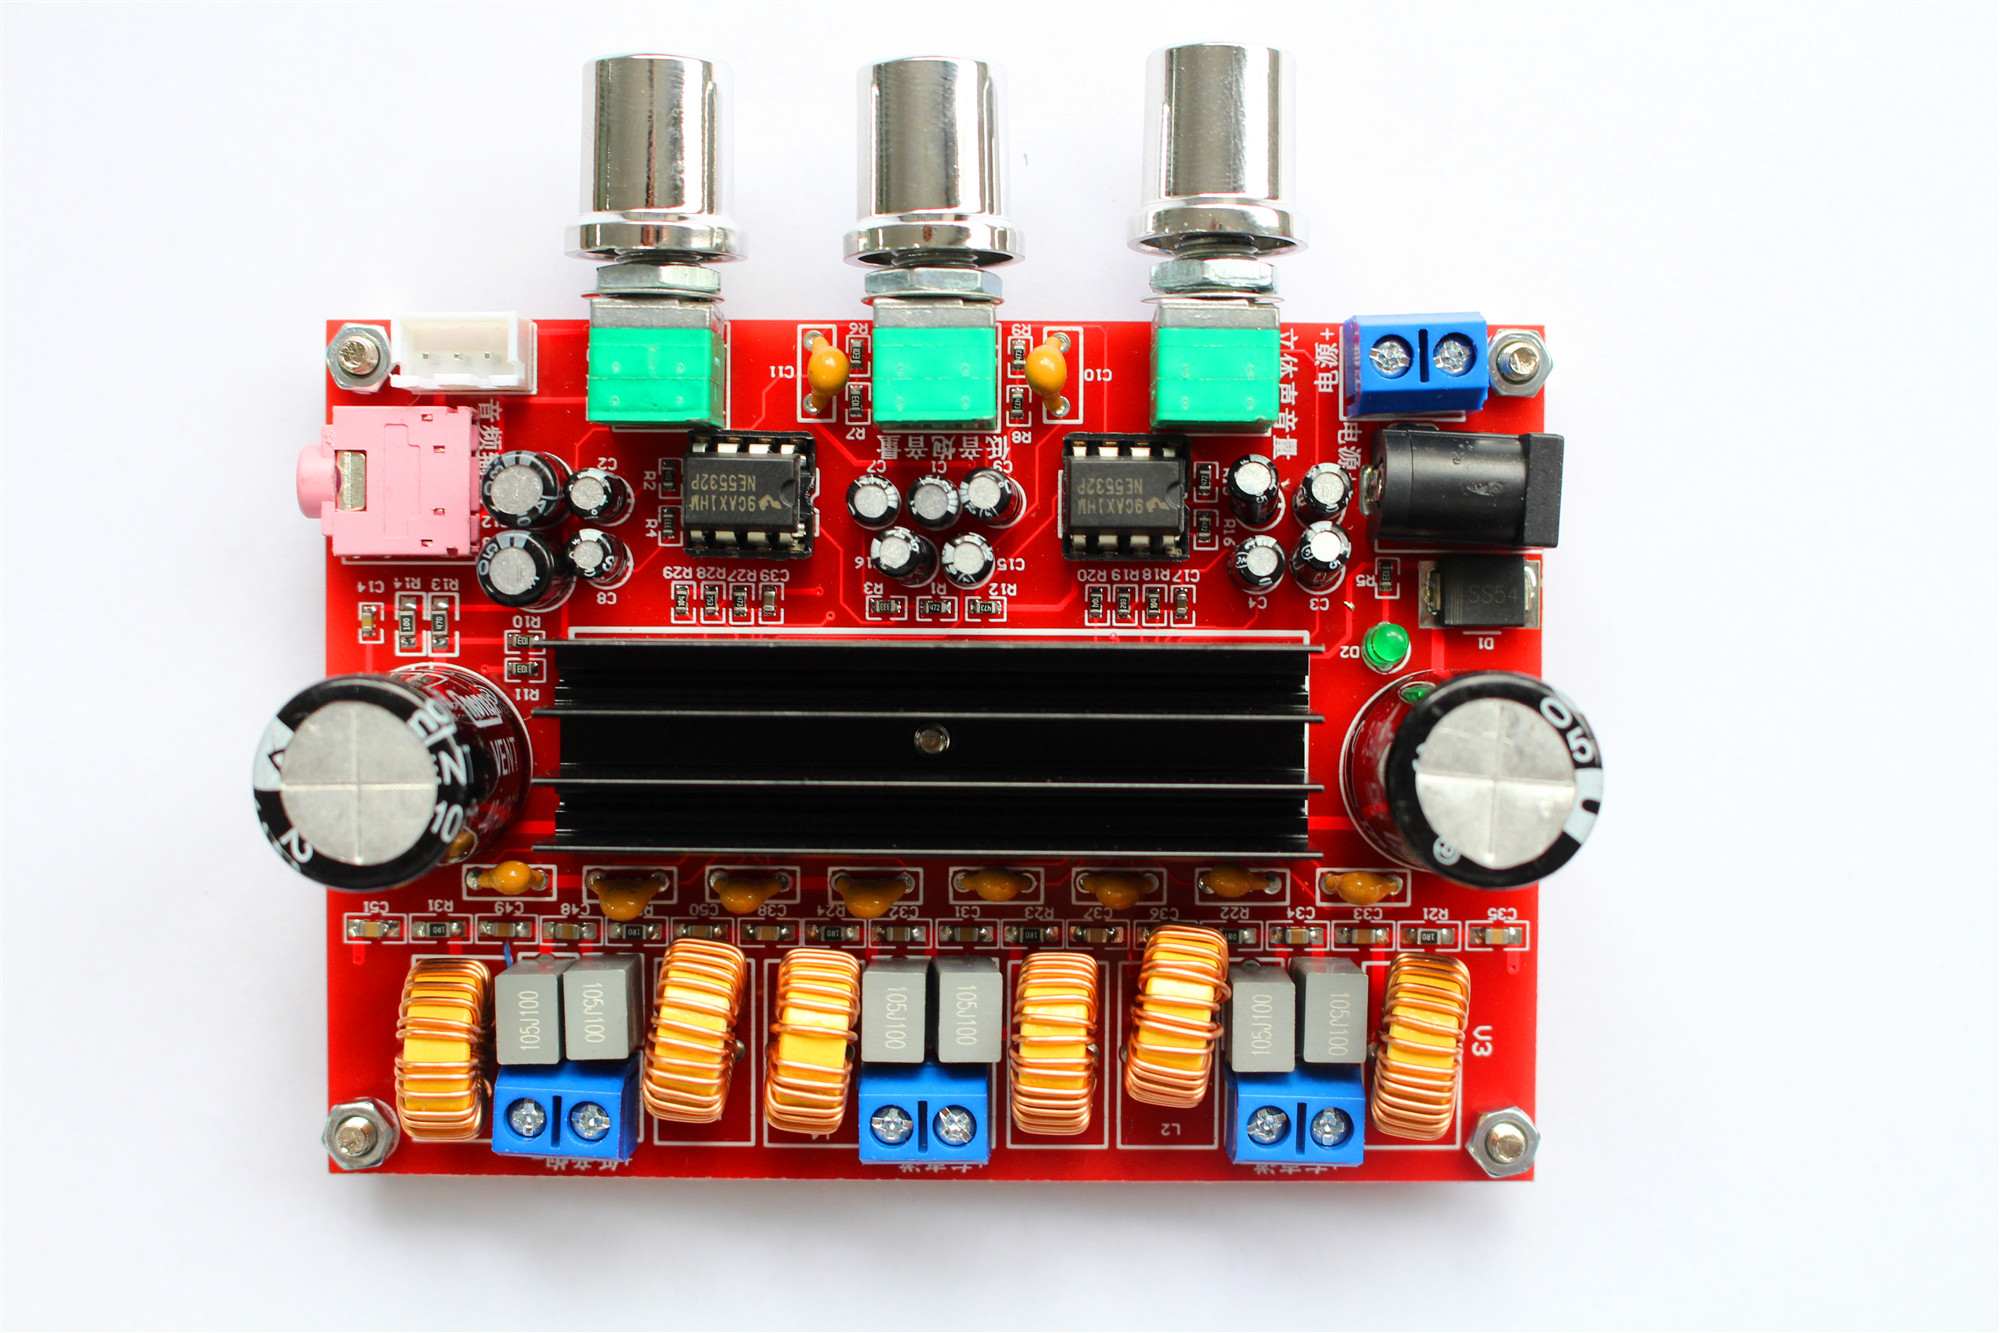 XH-M139 2.1 channel digital power amplifier board 12v-24v wide voltage TPA3116D2 2*50W 100W